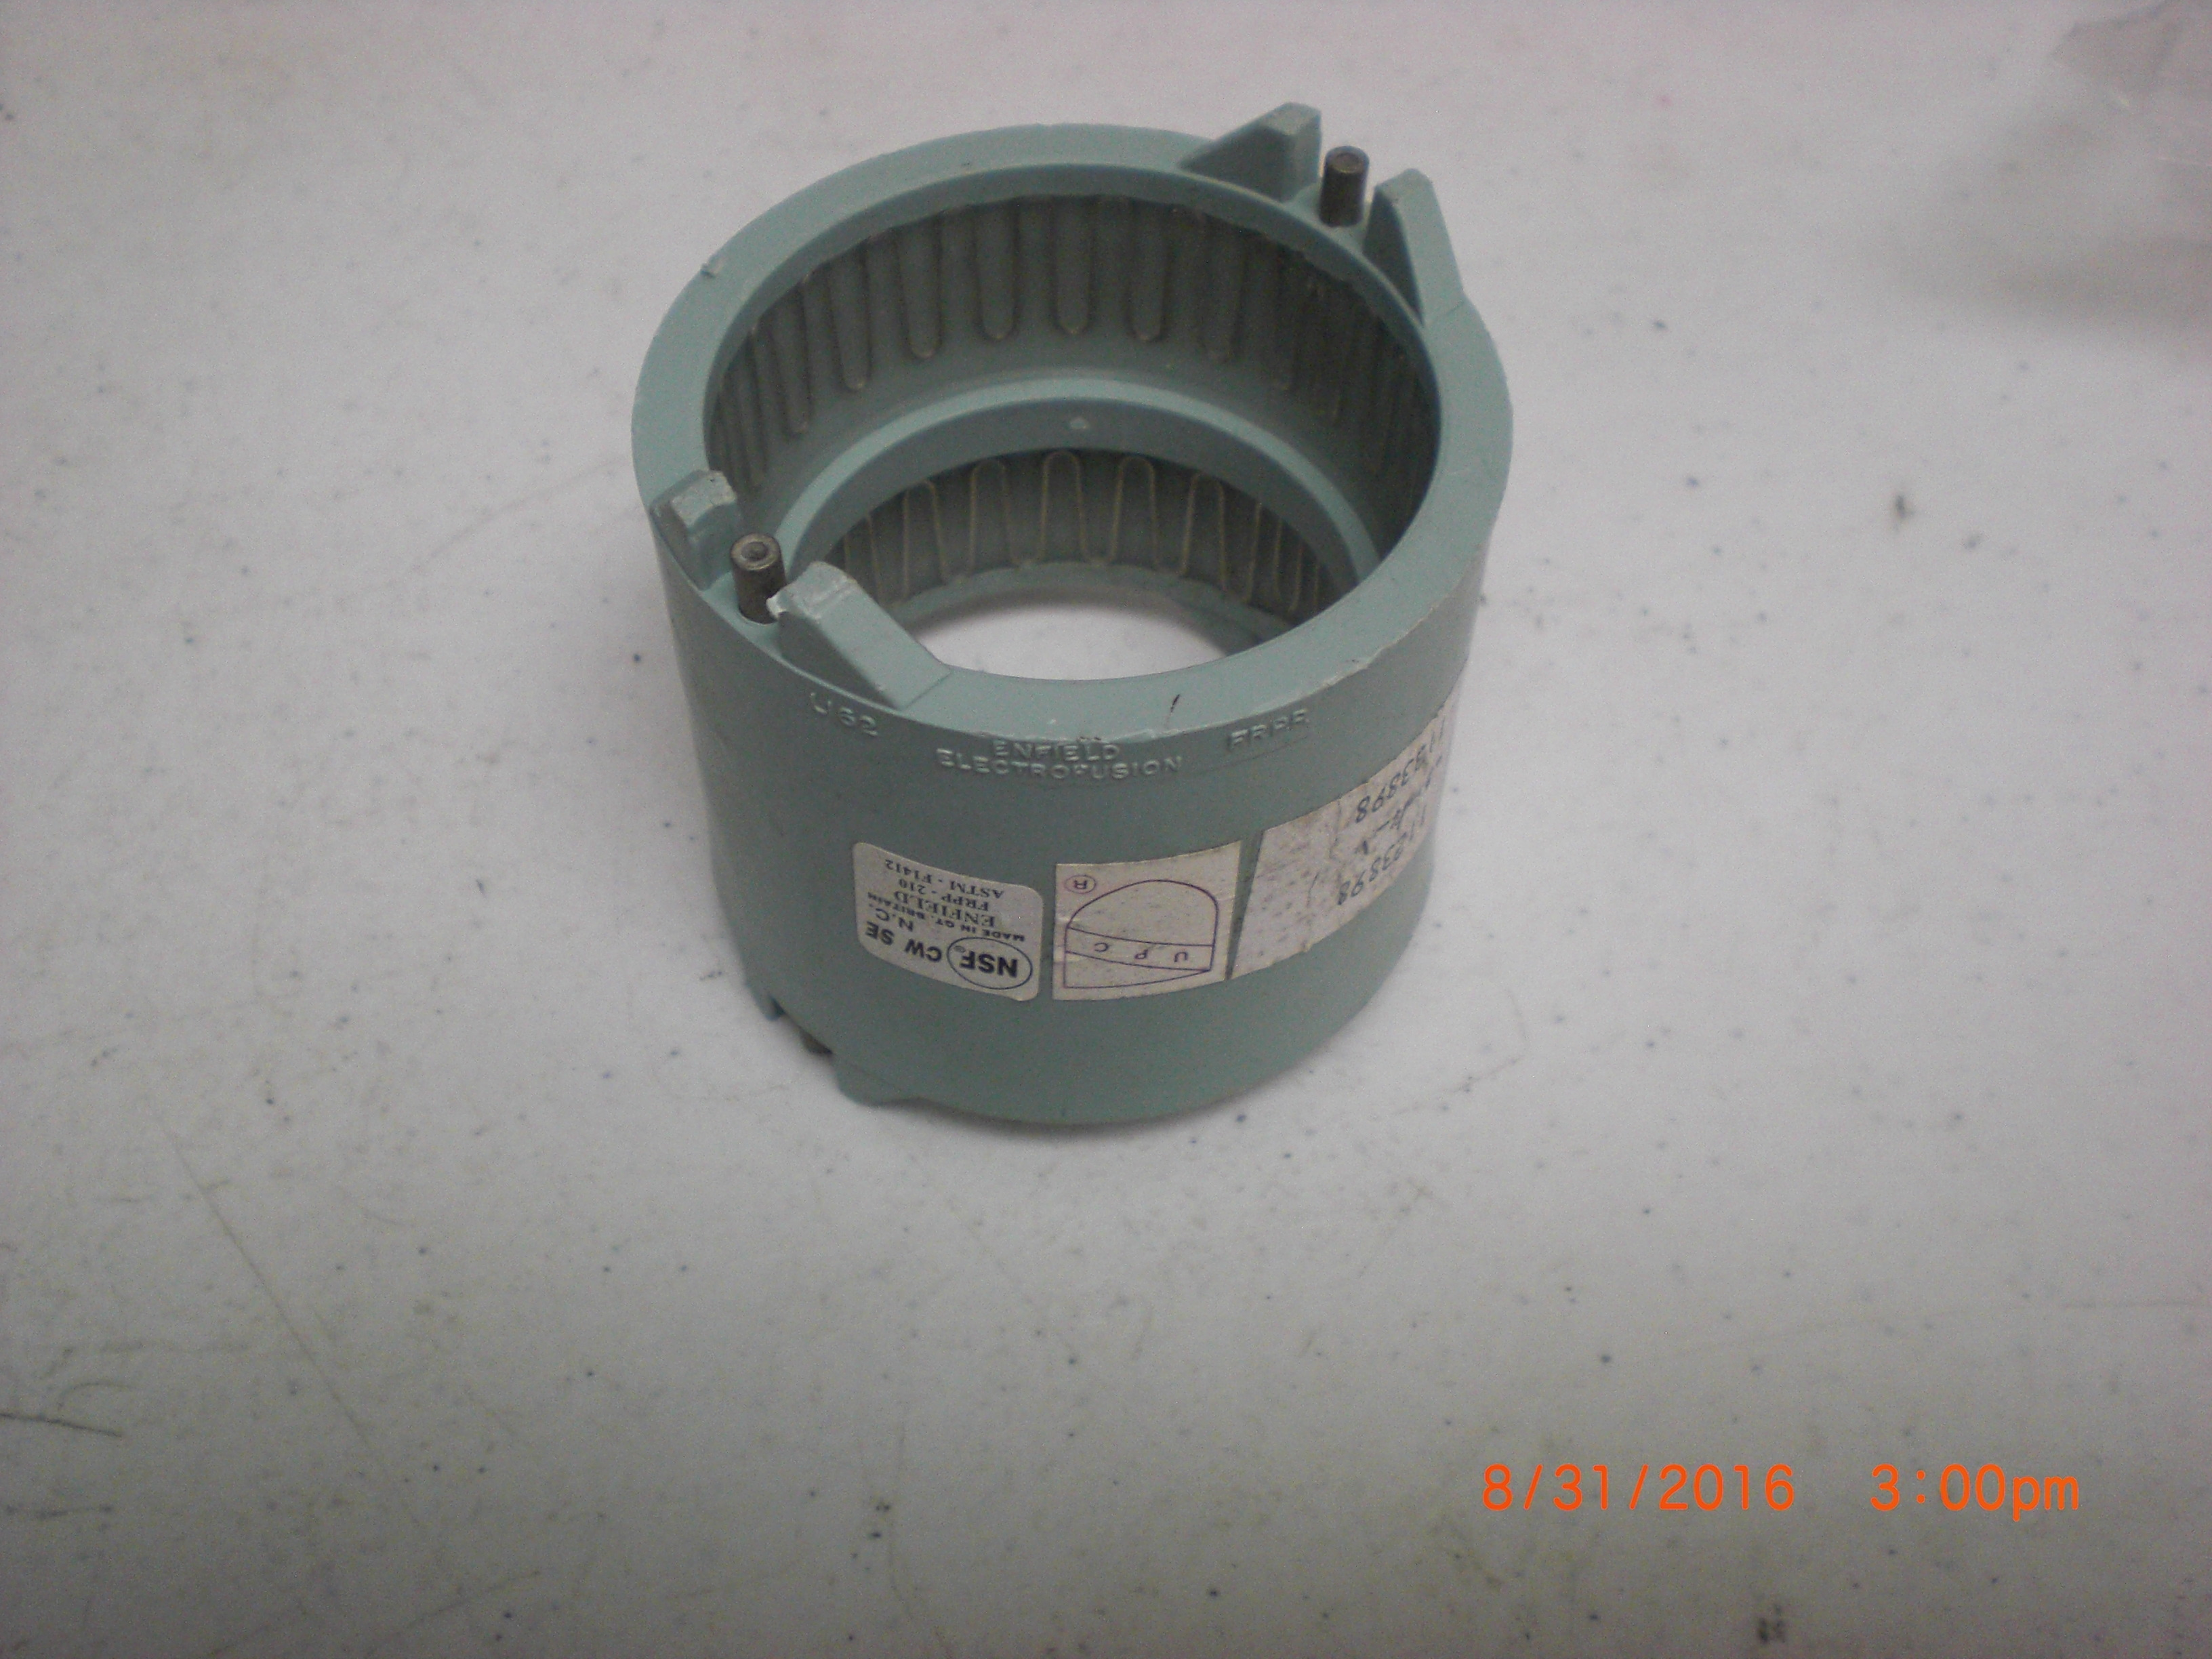 Fitting Enfield L162 Enfusion 2in FABRICATED REPAIR COUPLING EJ FRPP acid waste